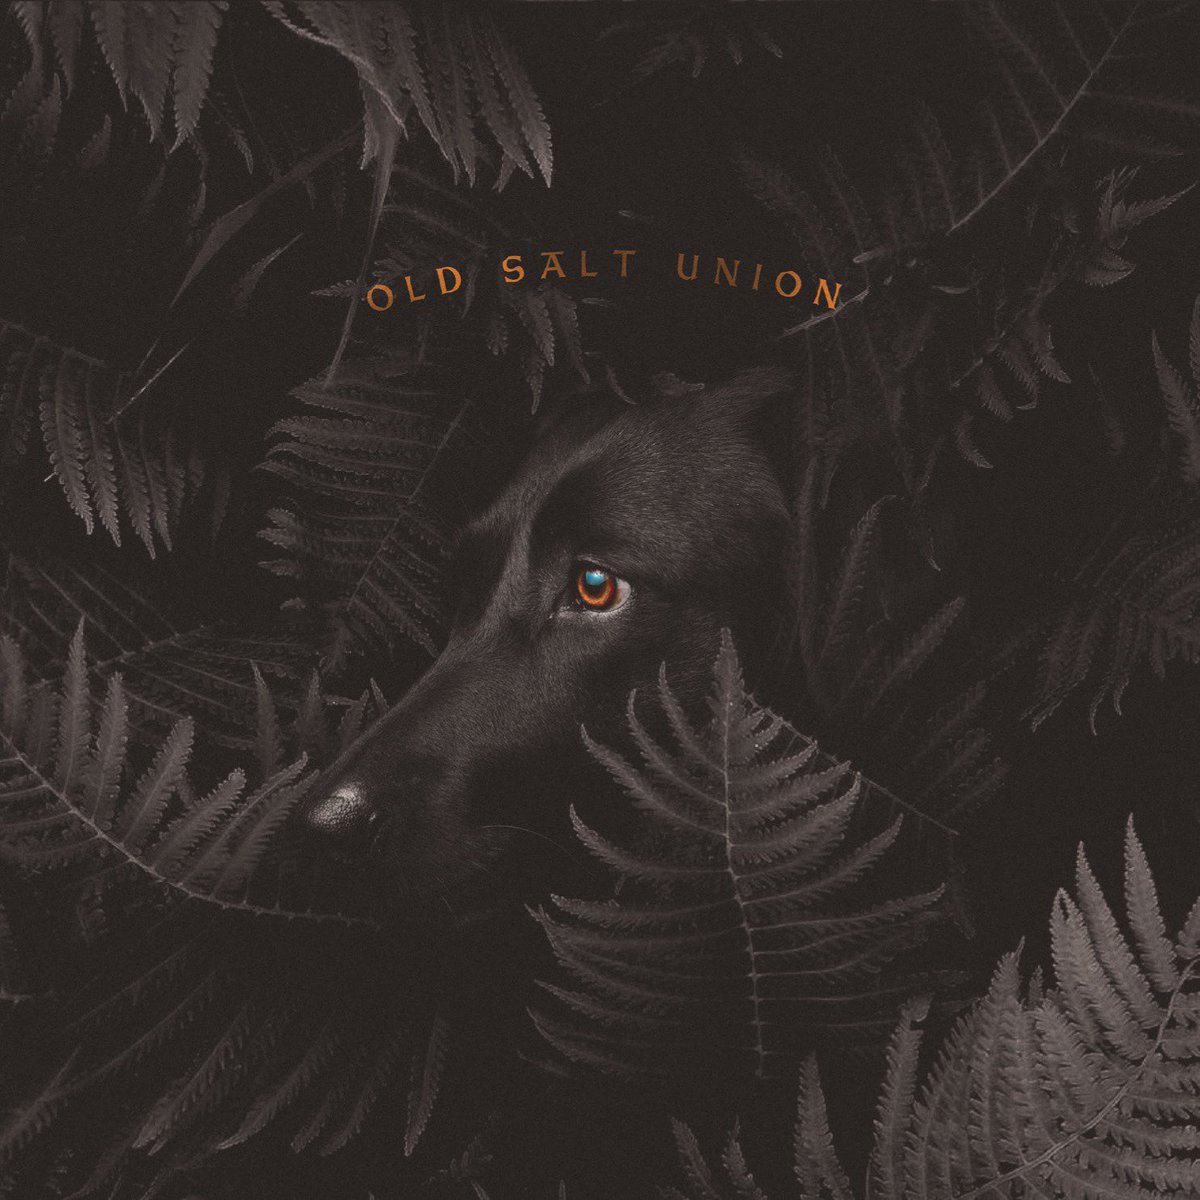 This Friday! @OldSaltUnion comes back to Vintage Vinyl for a special in-store performance at 7:00! Pick up their newest release, Where the Dogs Dont Bite and for those 21+ enjoy some free beer courtesy of @Schlafly! Dont miss it!